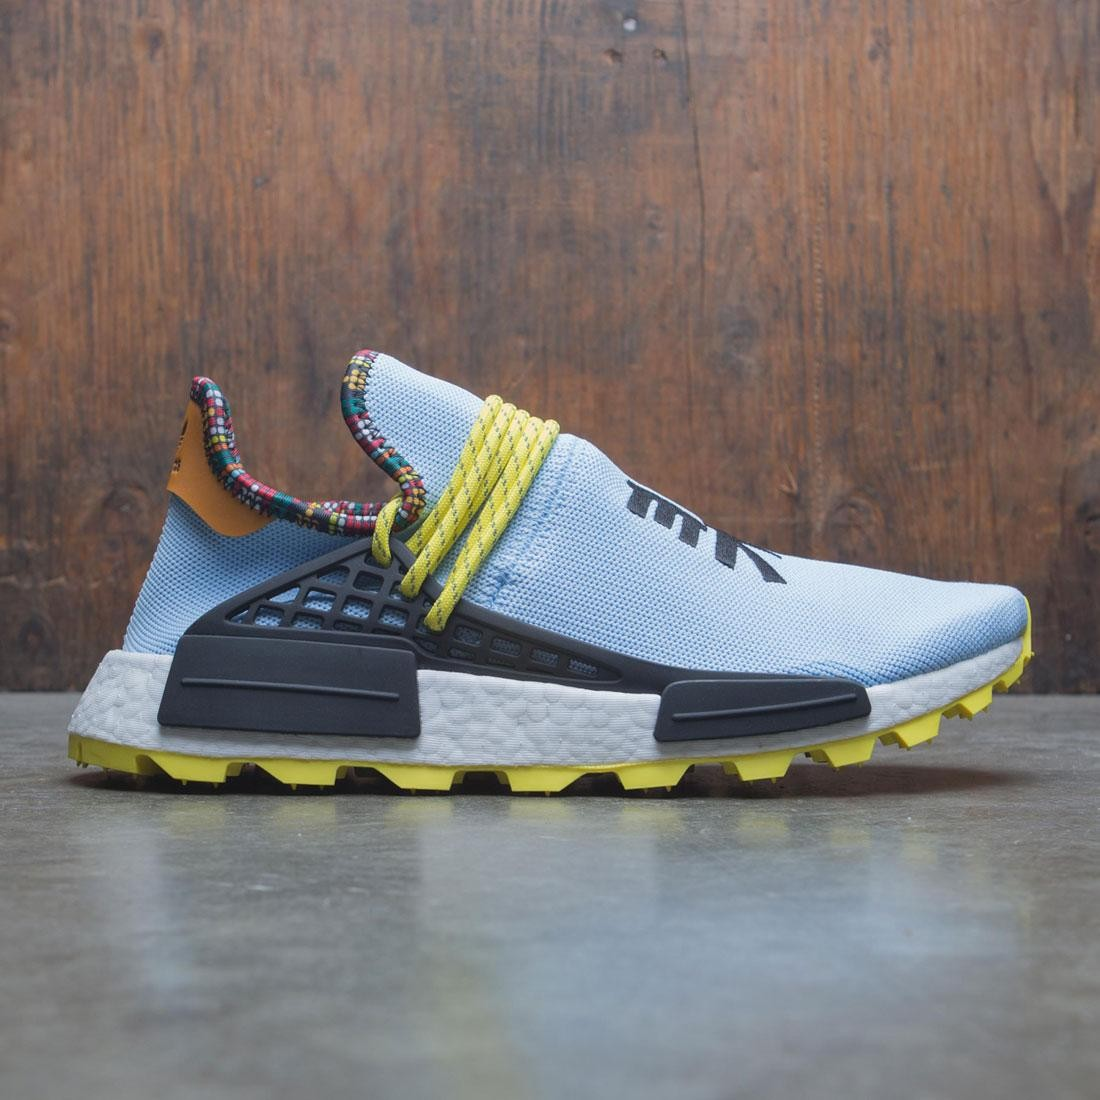 Adidas x Pharrell Williams Men Solar HU NMD (blue / core black / bright orange)